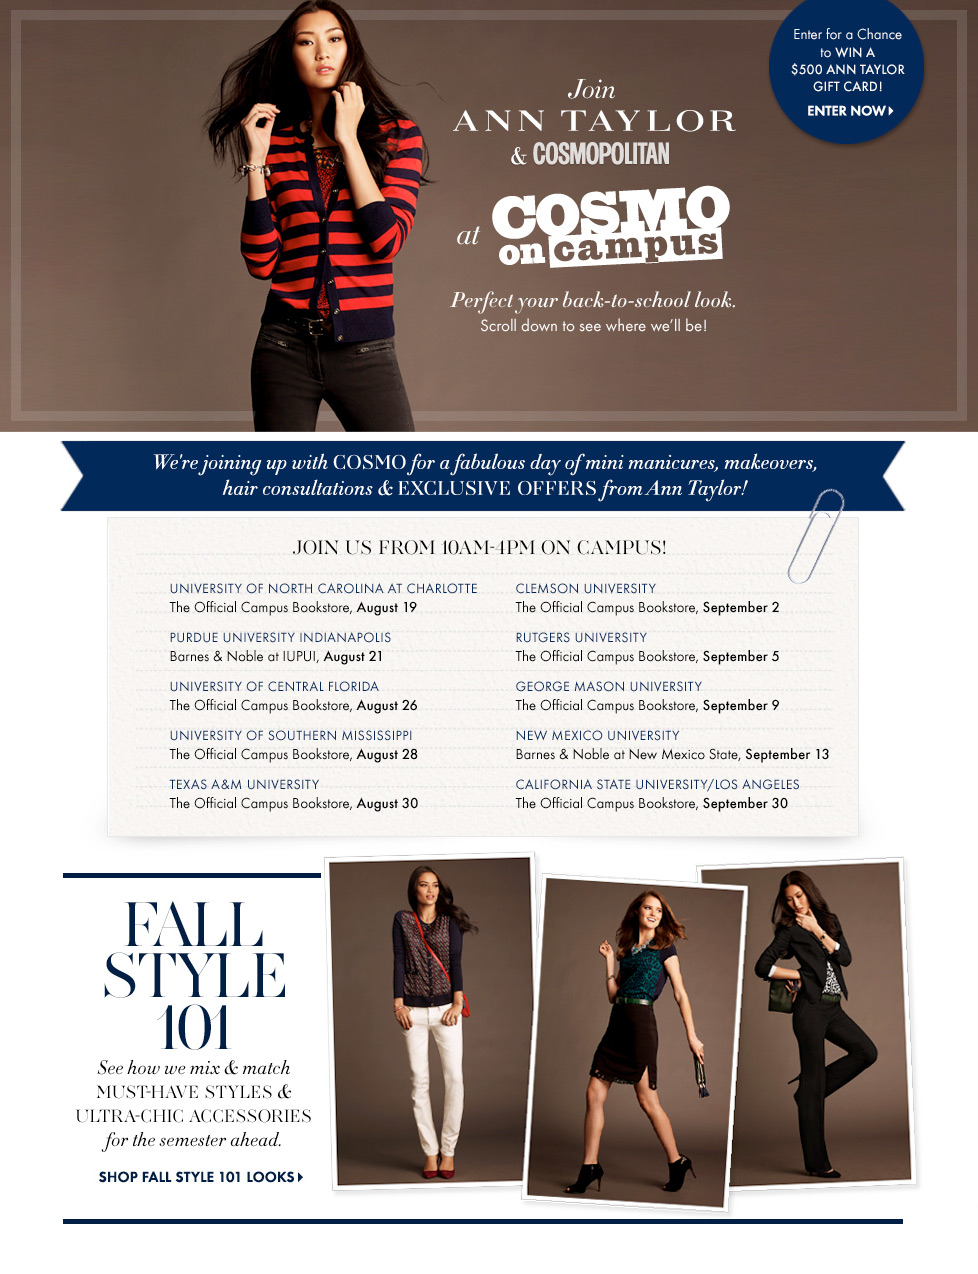 ANN TAYLOR AND COSMOPOLITAN PRESENT COSMO ON CAMPUS